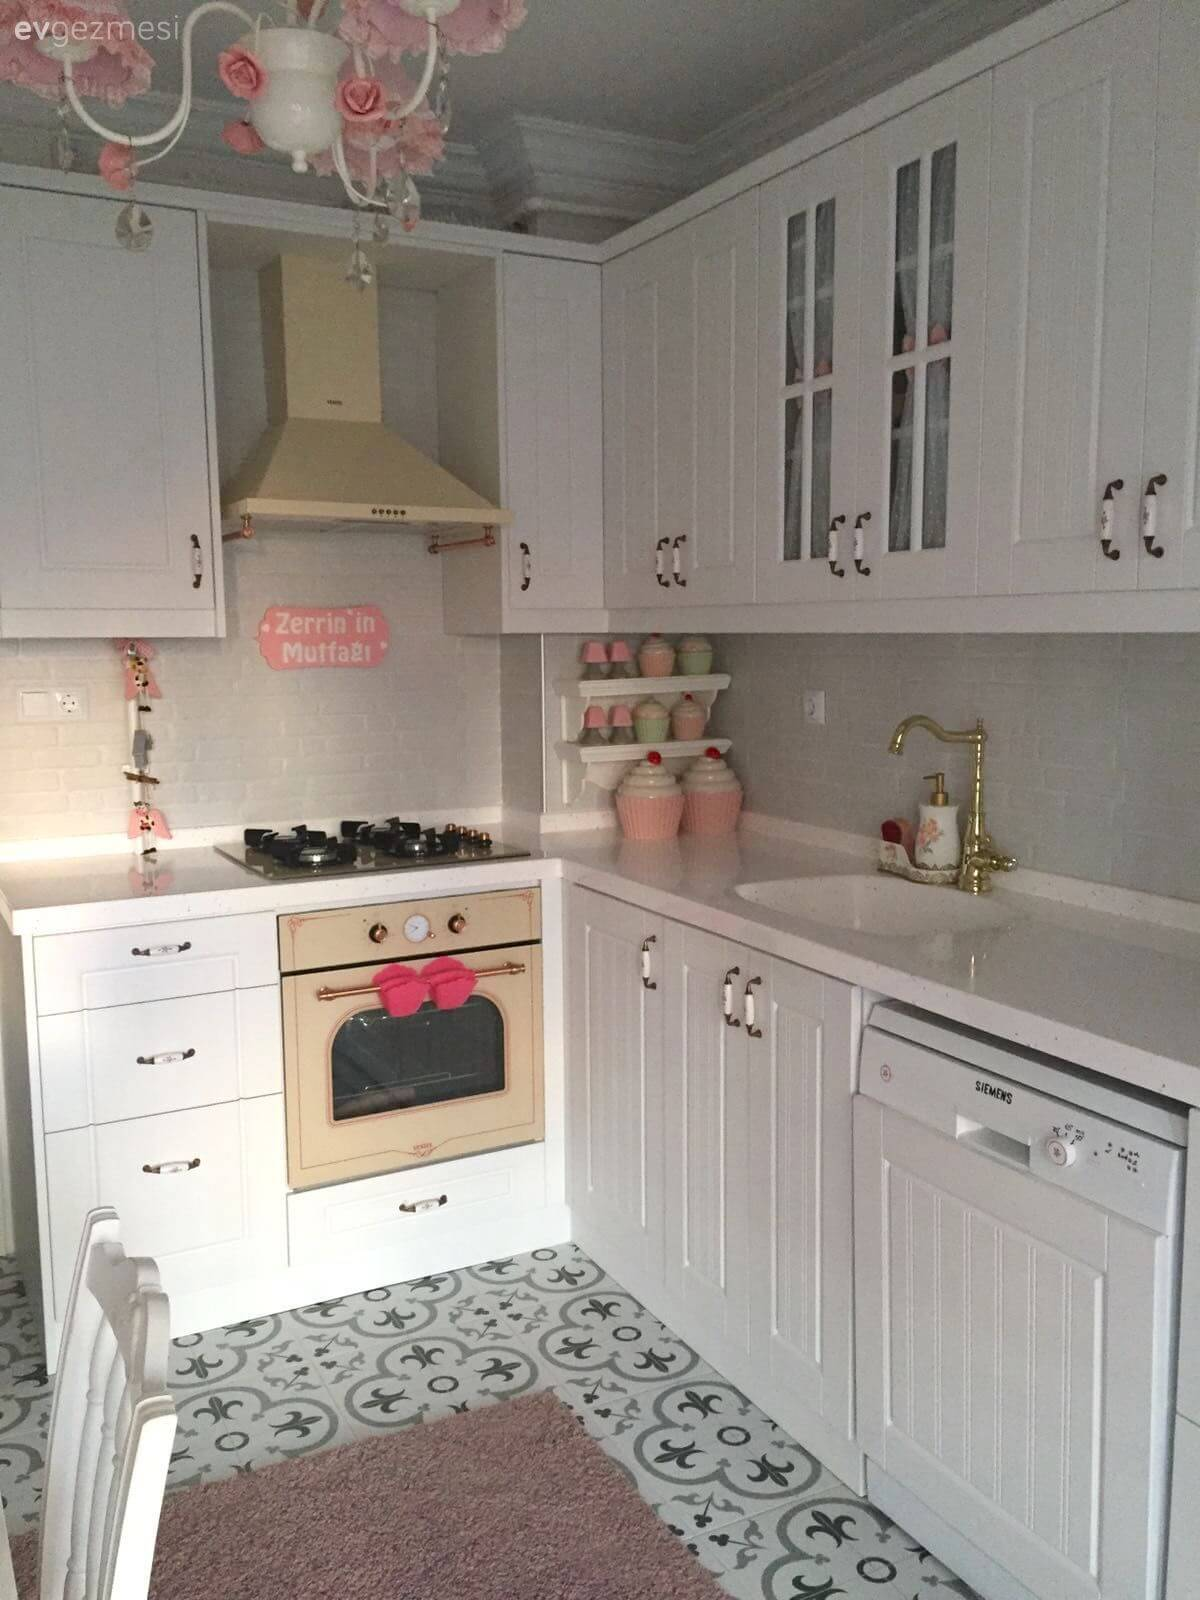 small kitchen decor trash bin 30 best and design ideas for 2019 20 pretty with pink to sweeten the room